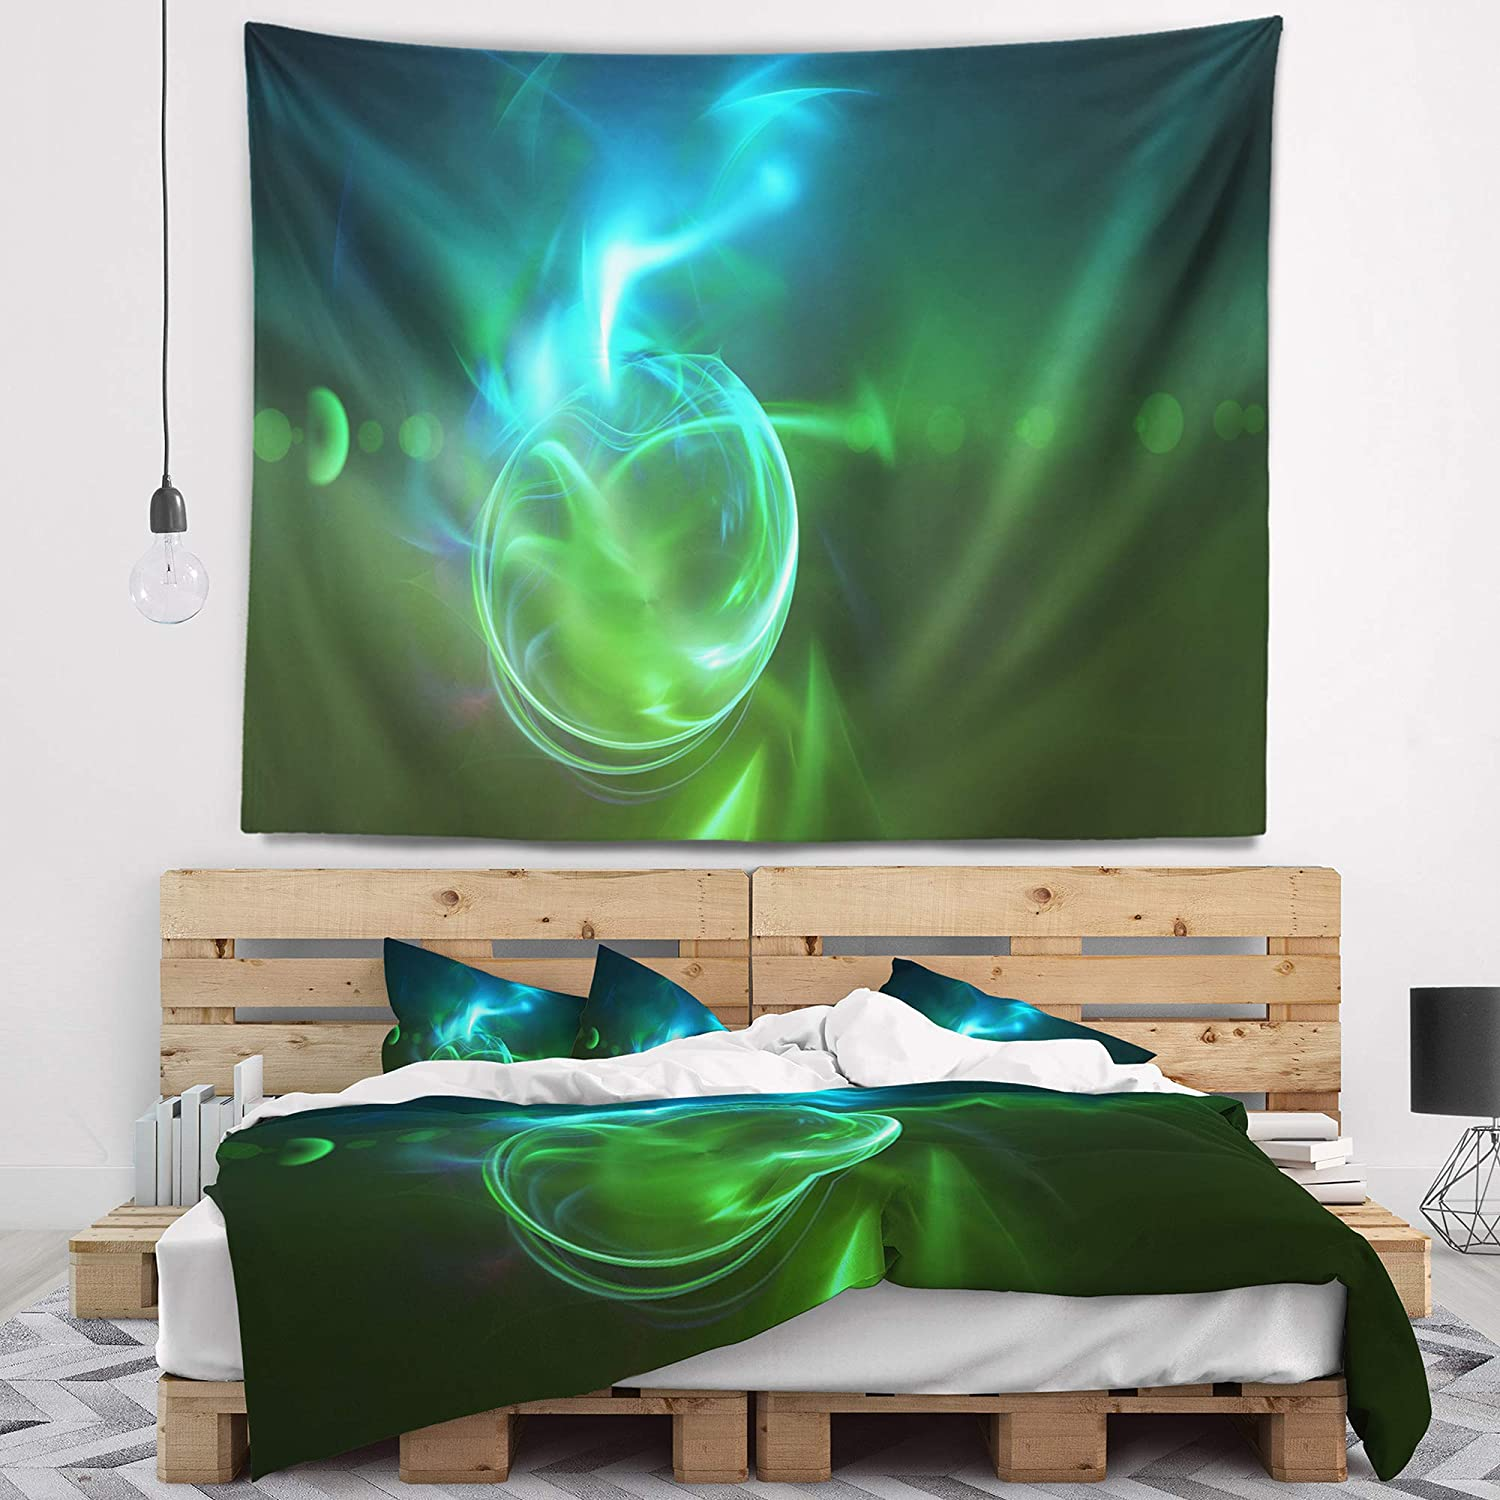 x 32 in Created On Lightweight Polyester Fabric Medium: 39 in Designart TAP7716-39-32 Glowing Green Circles Abstract Blanket D/écor Art for Home and Office Wall Tapestry